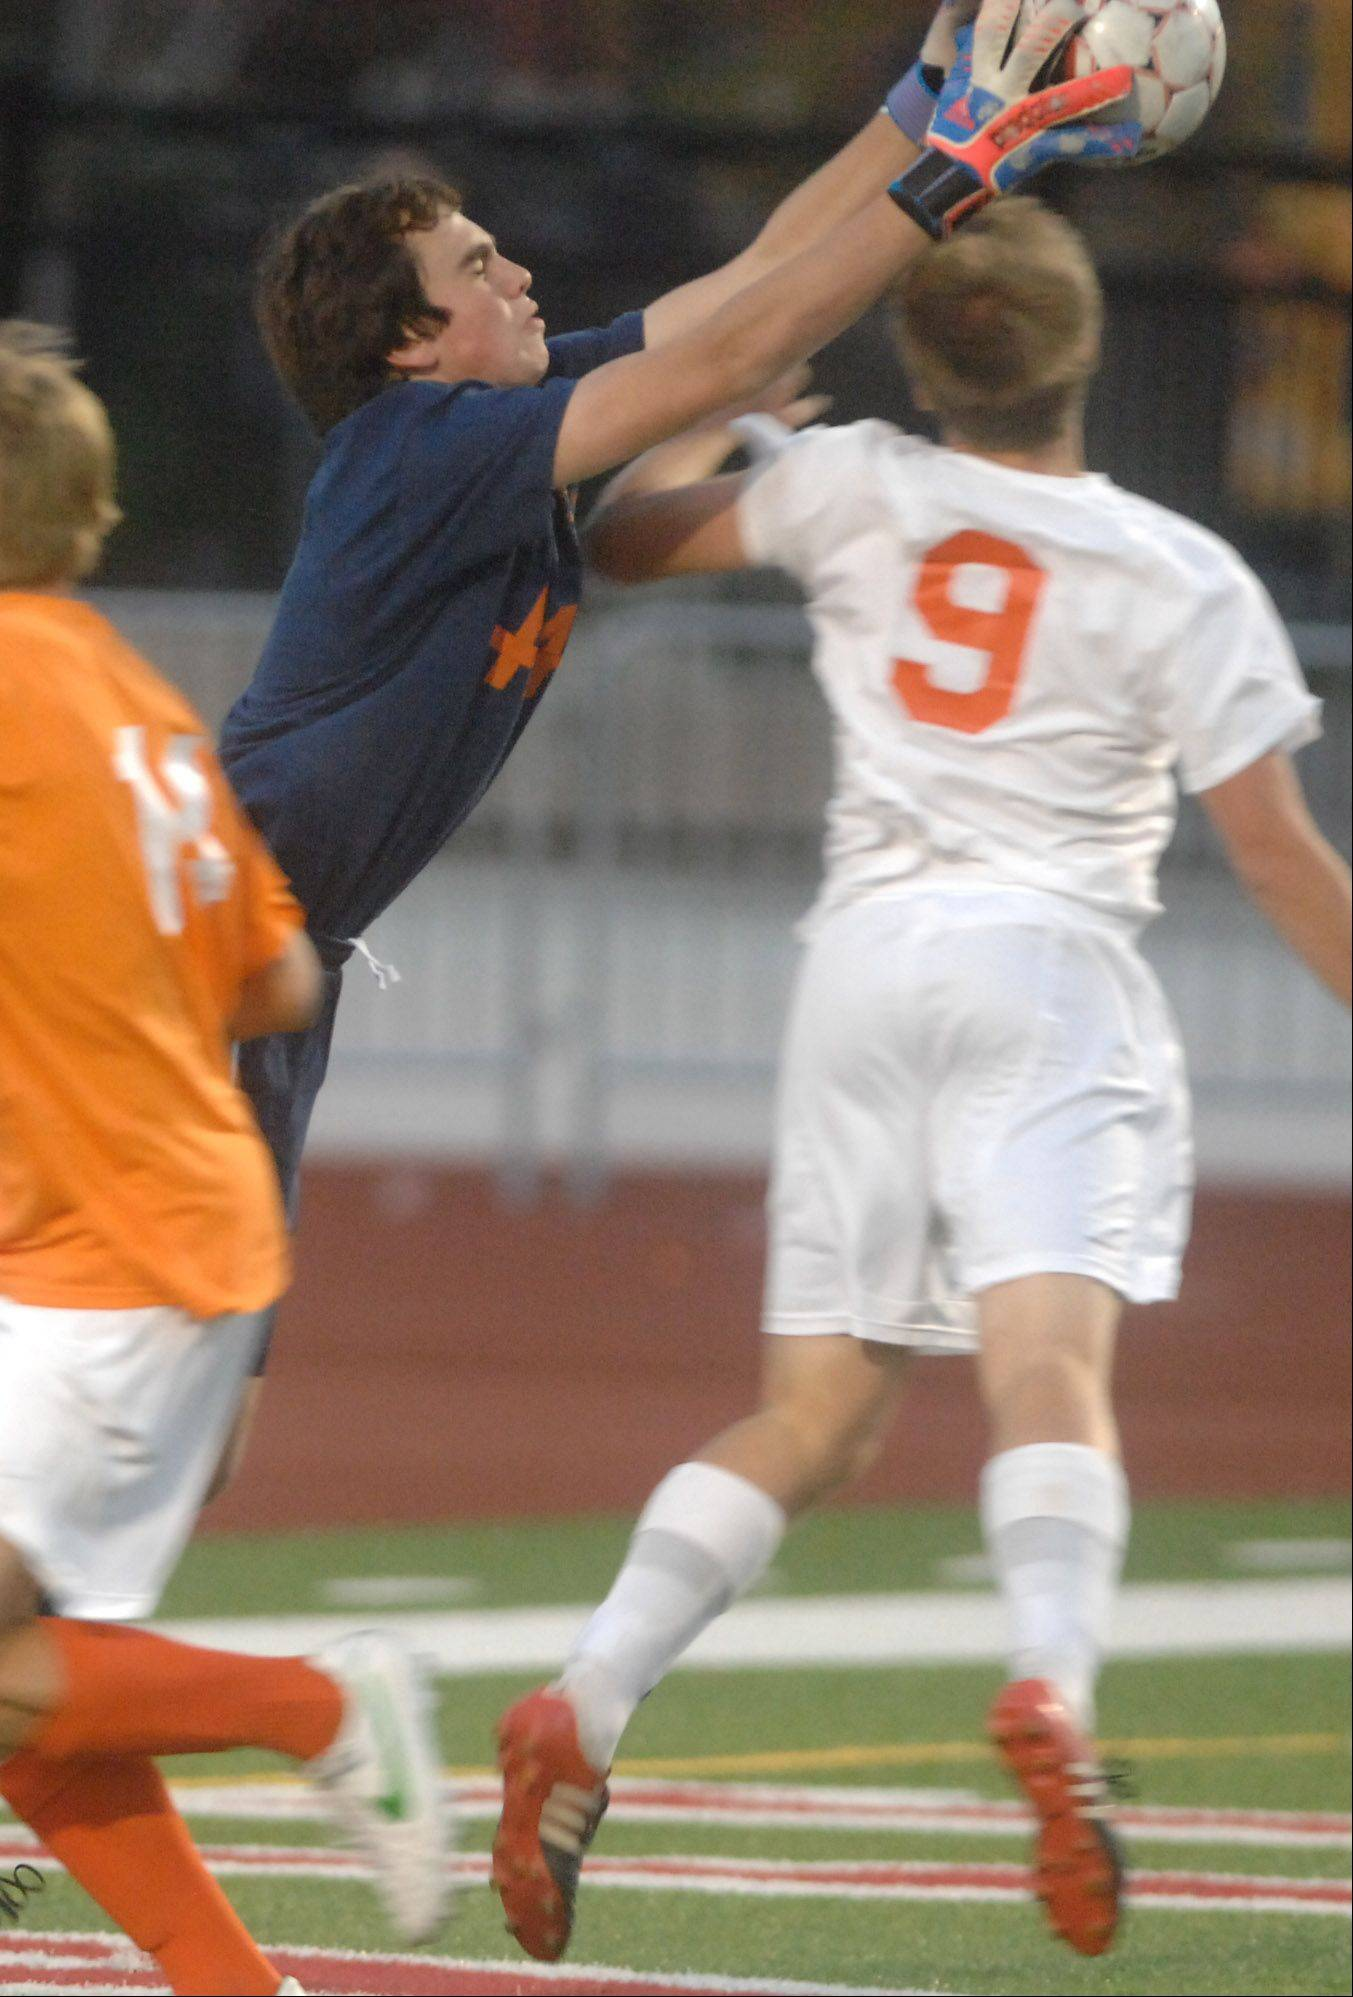 Grant Lesak of Naperville North jumps to catch a shot during the Naperville Central vs. Naperville North boys soccer game in Naperville Tuesday.